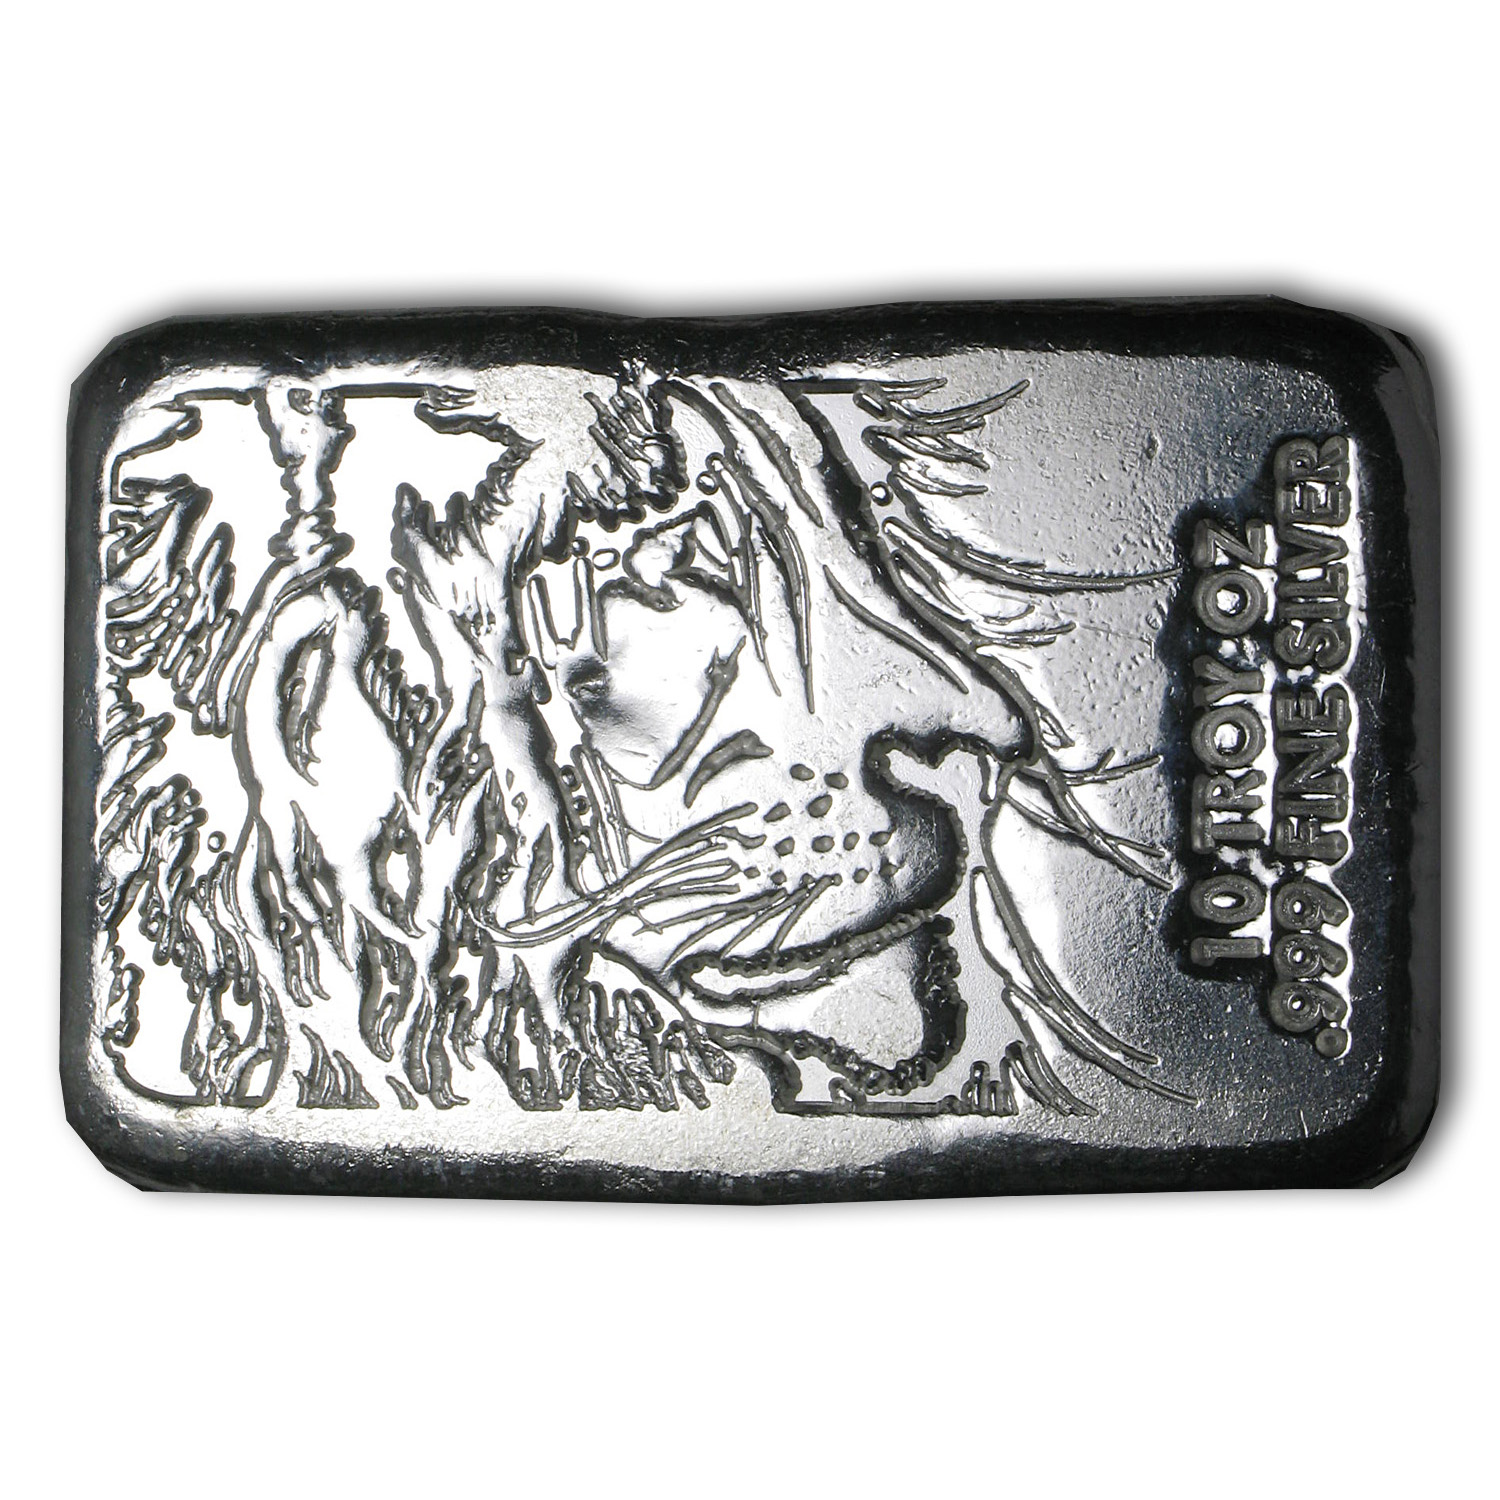 10 oz Silver Bar - Lion (Atlantis Mint)